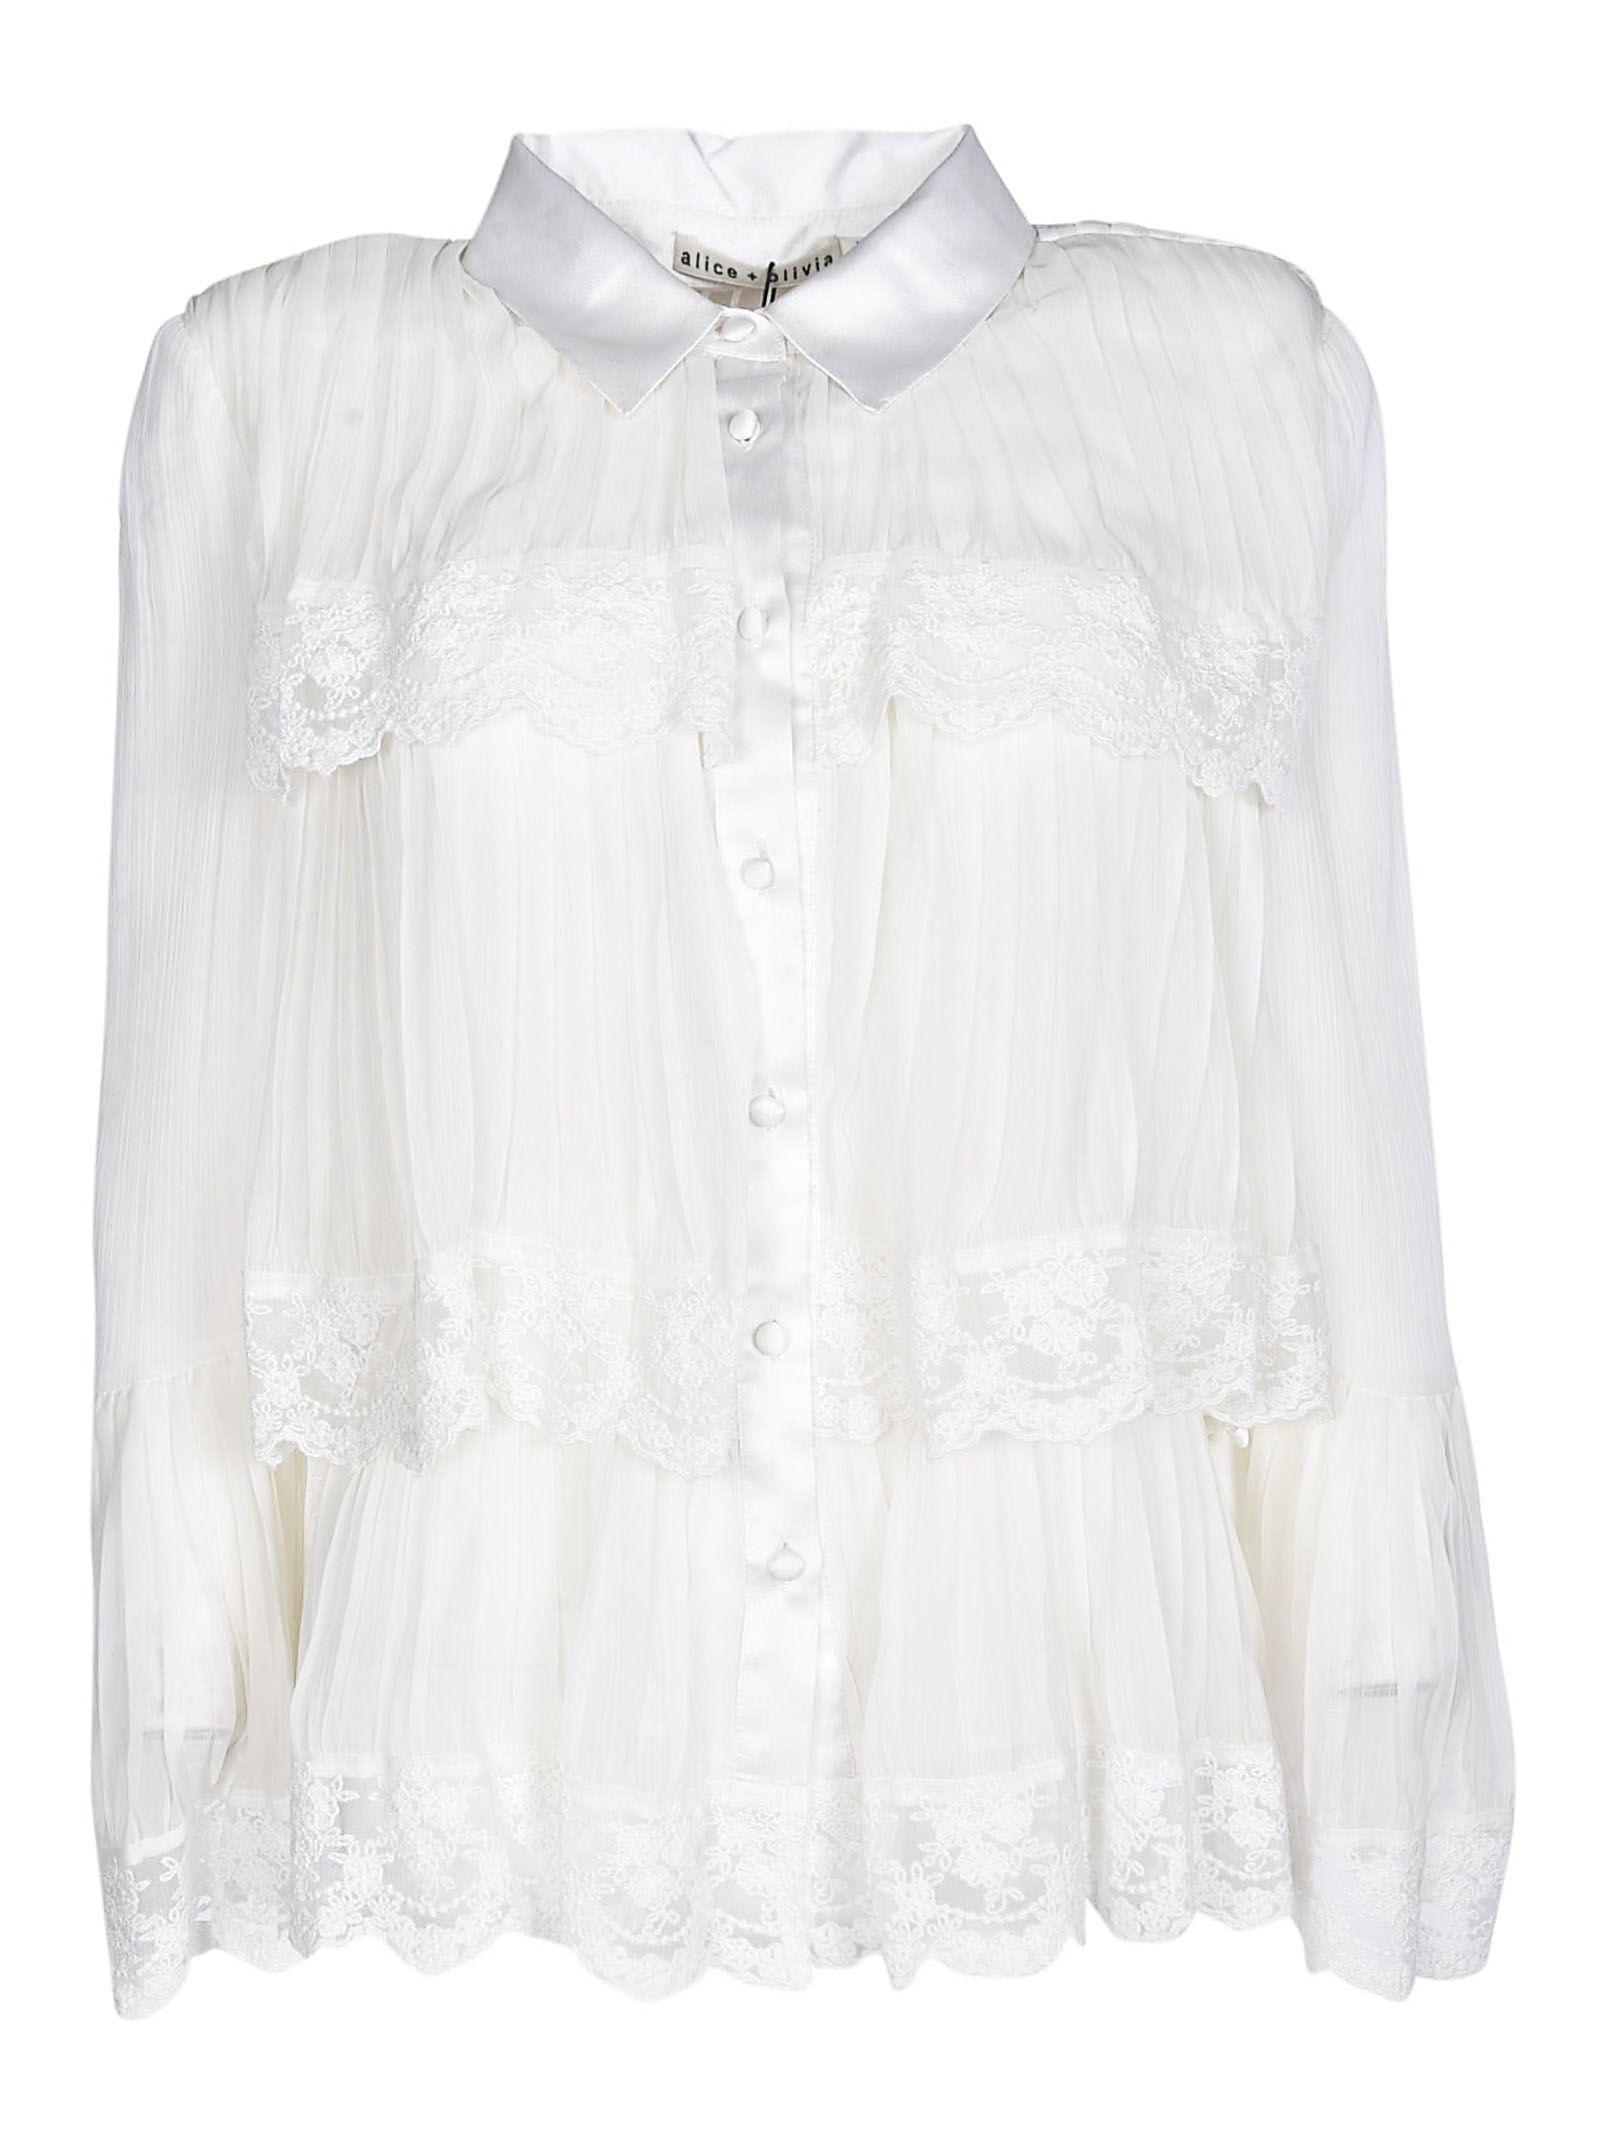 Alice+olivia Tiered Lace Trim Shirt